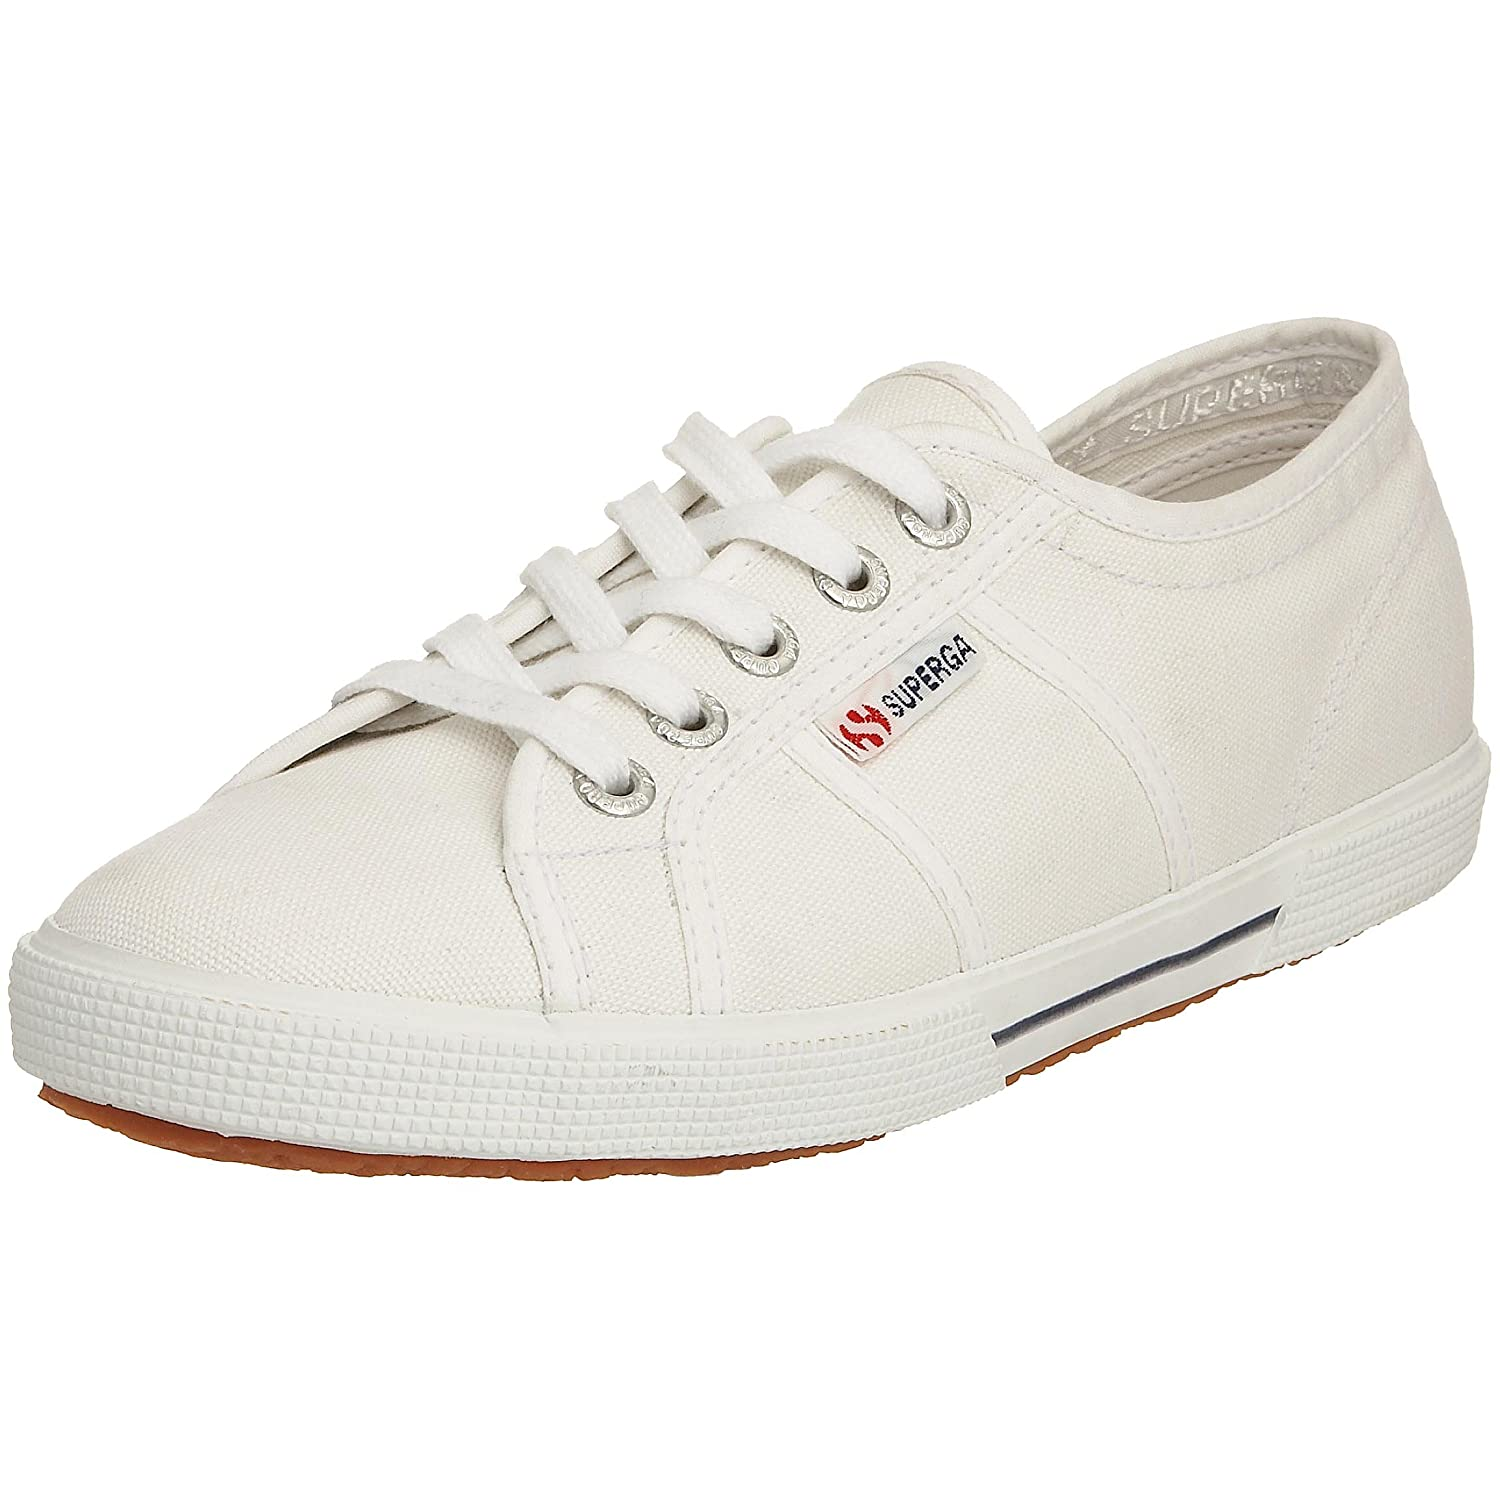 Superga 2750 Cotu Classic, Baskets mixte adulte, Bleu (C20 Blue Iris), 46 EU